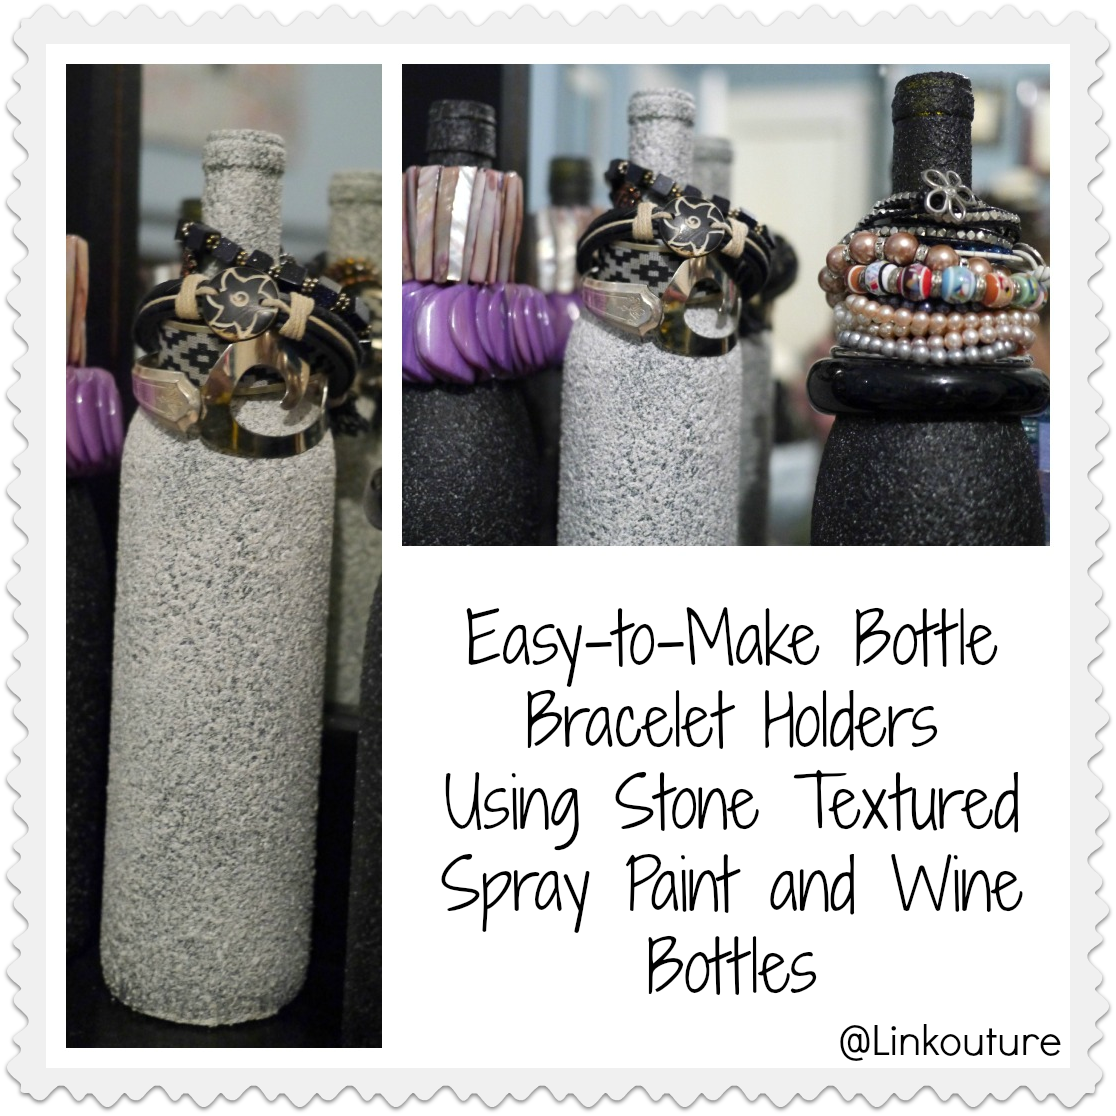 Fun with Stone Textured Spray Paint Part 1: Bottle Bracelet Holders